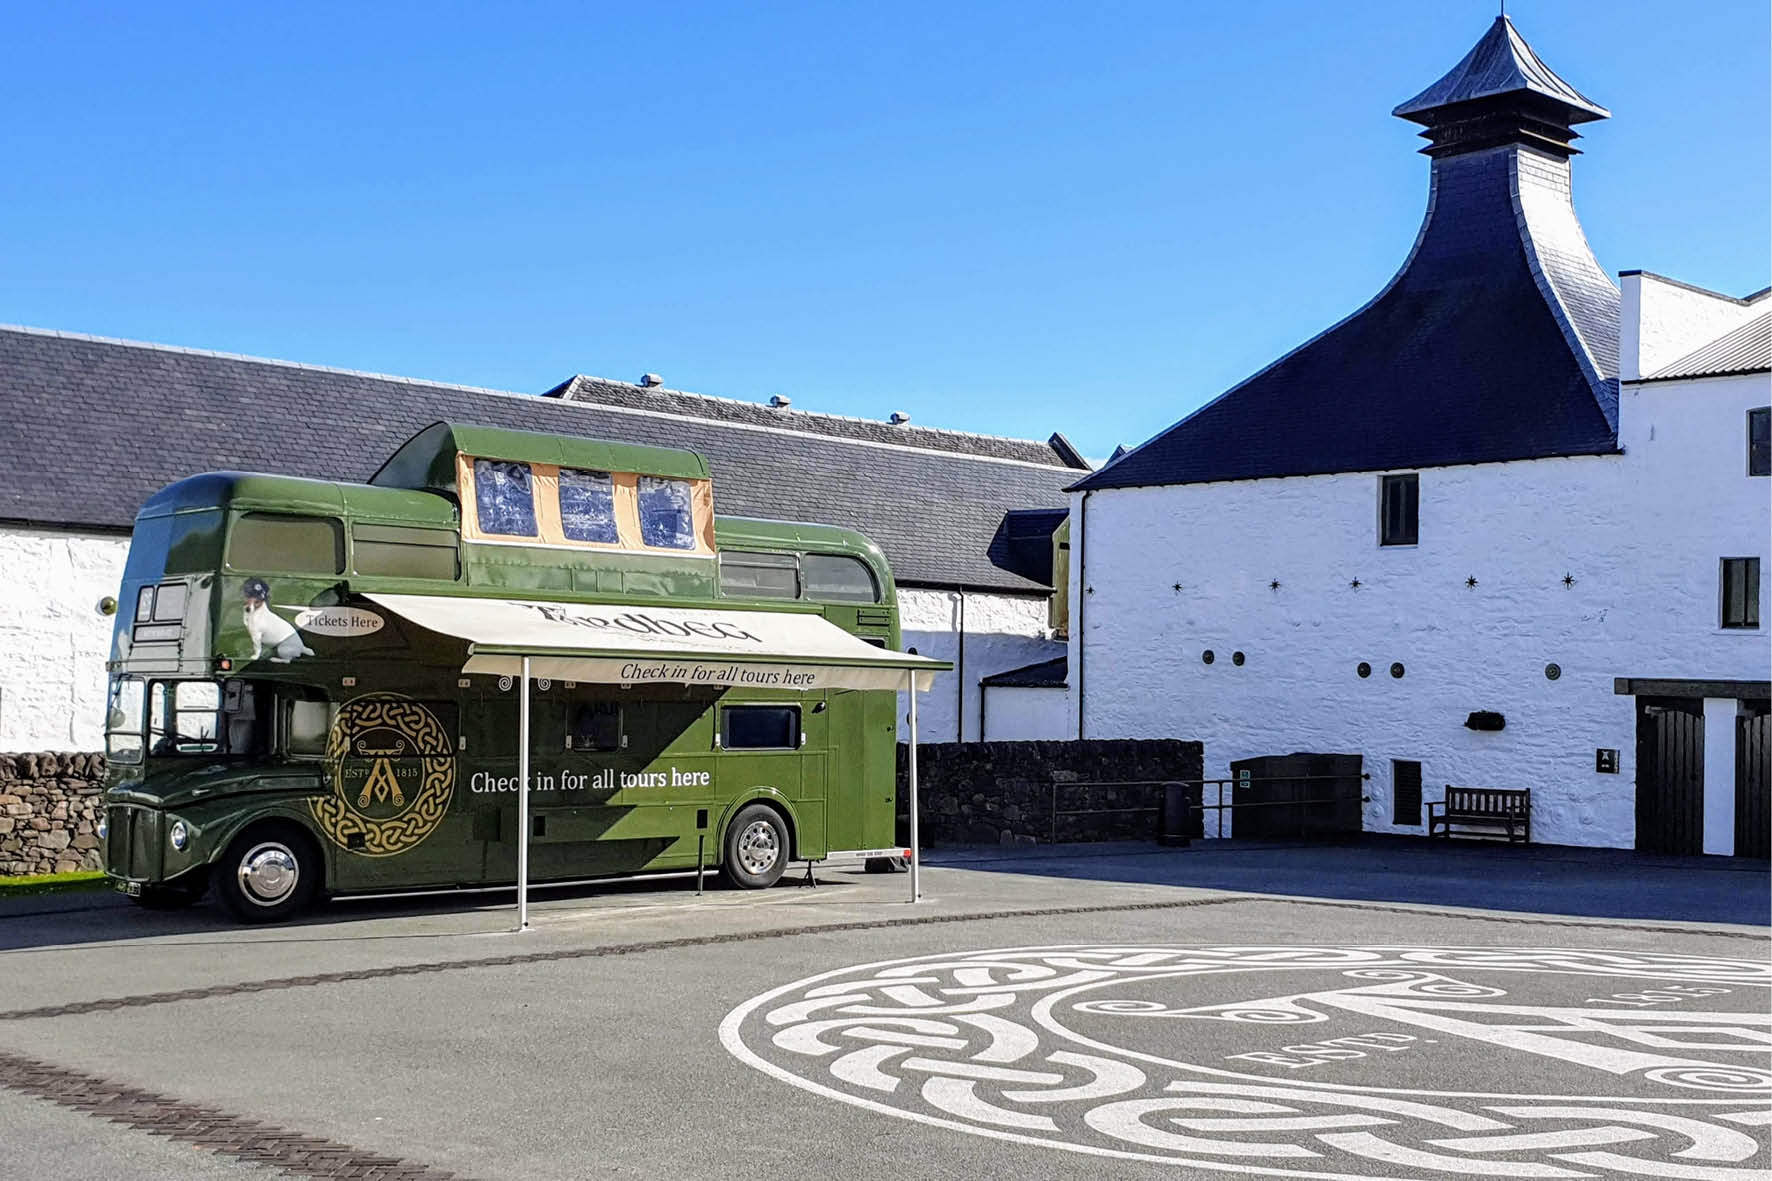 bus_business_2019_ardbeg_11.jpg